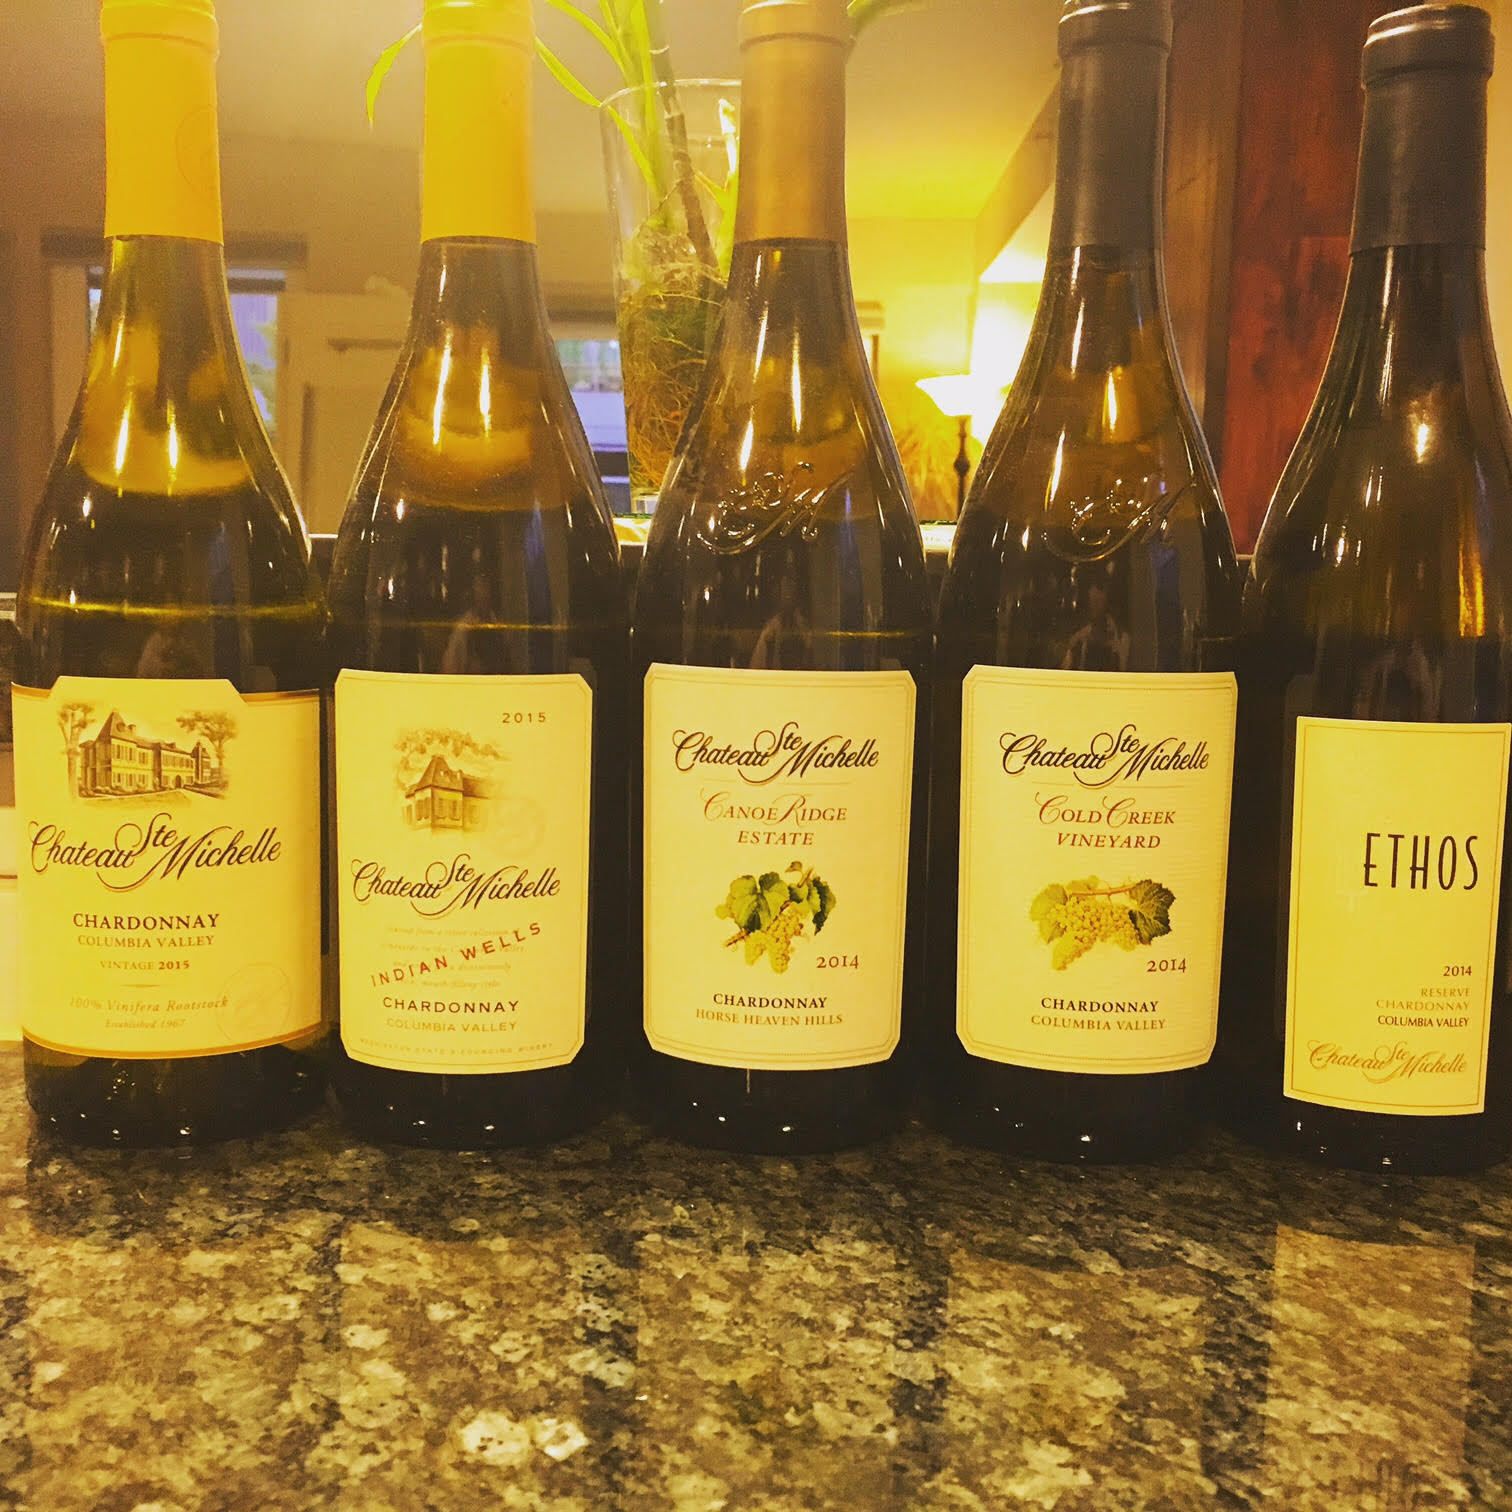 The gorgeous new release Chardonnay wines by Chateau St. Michelle.